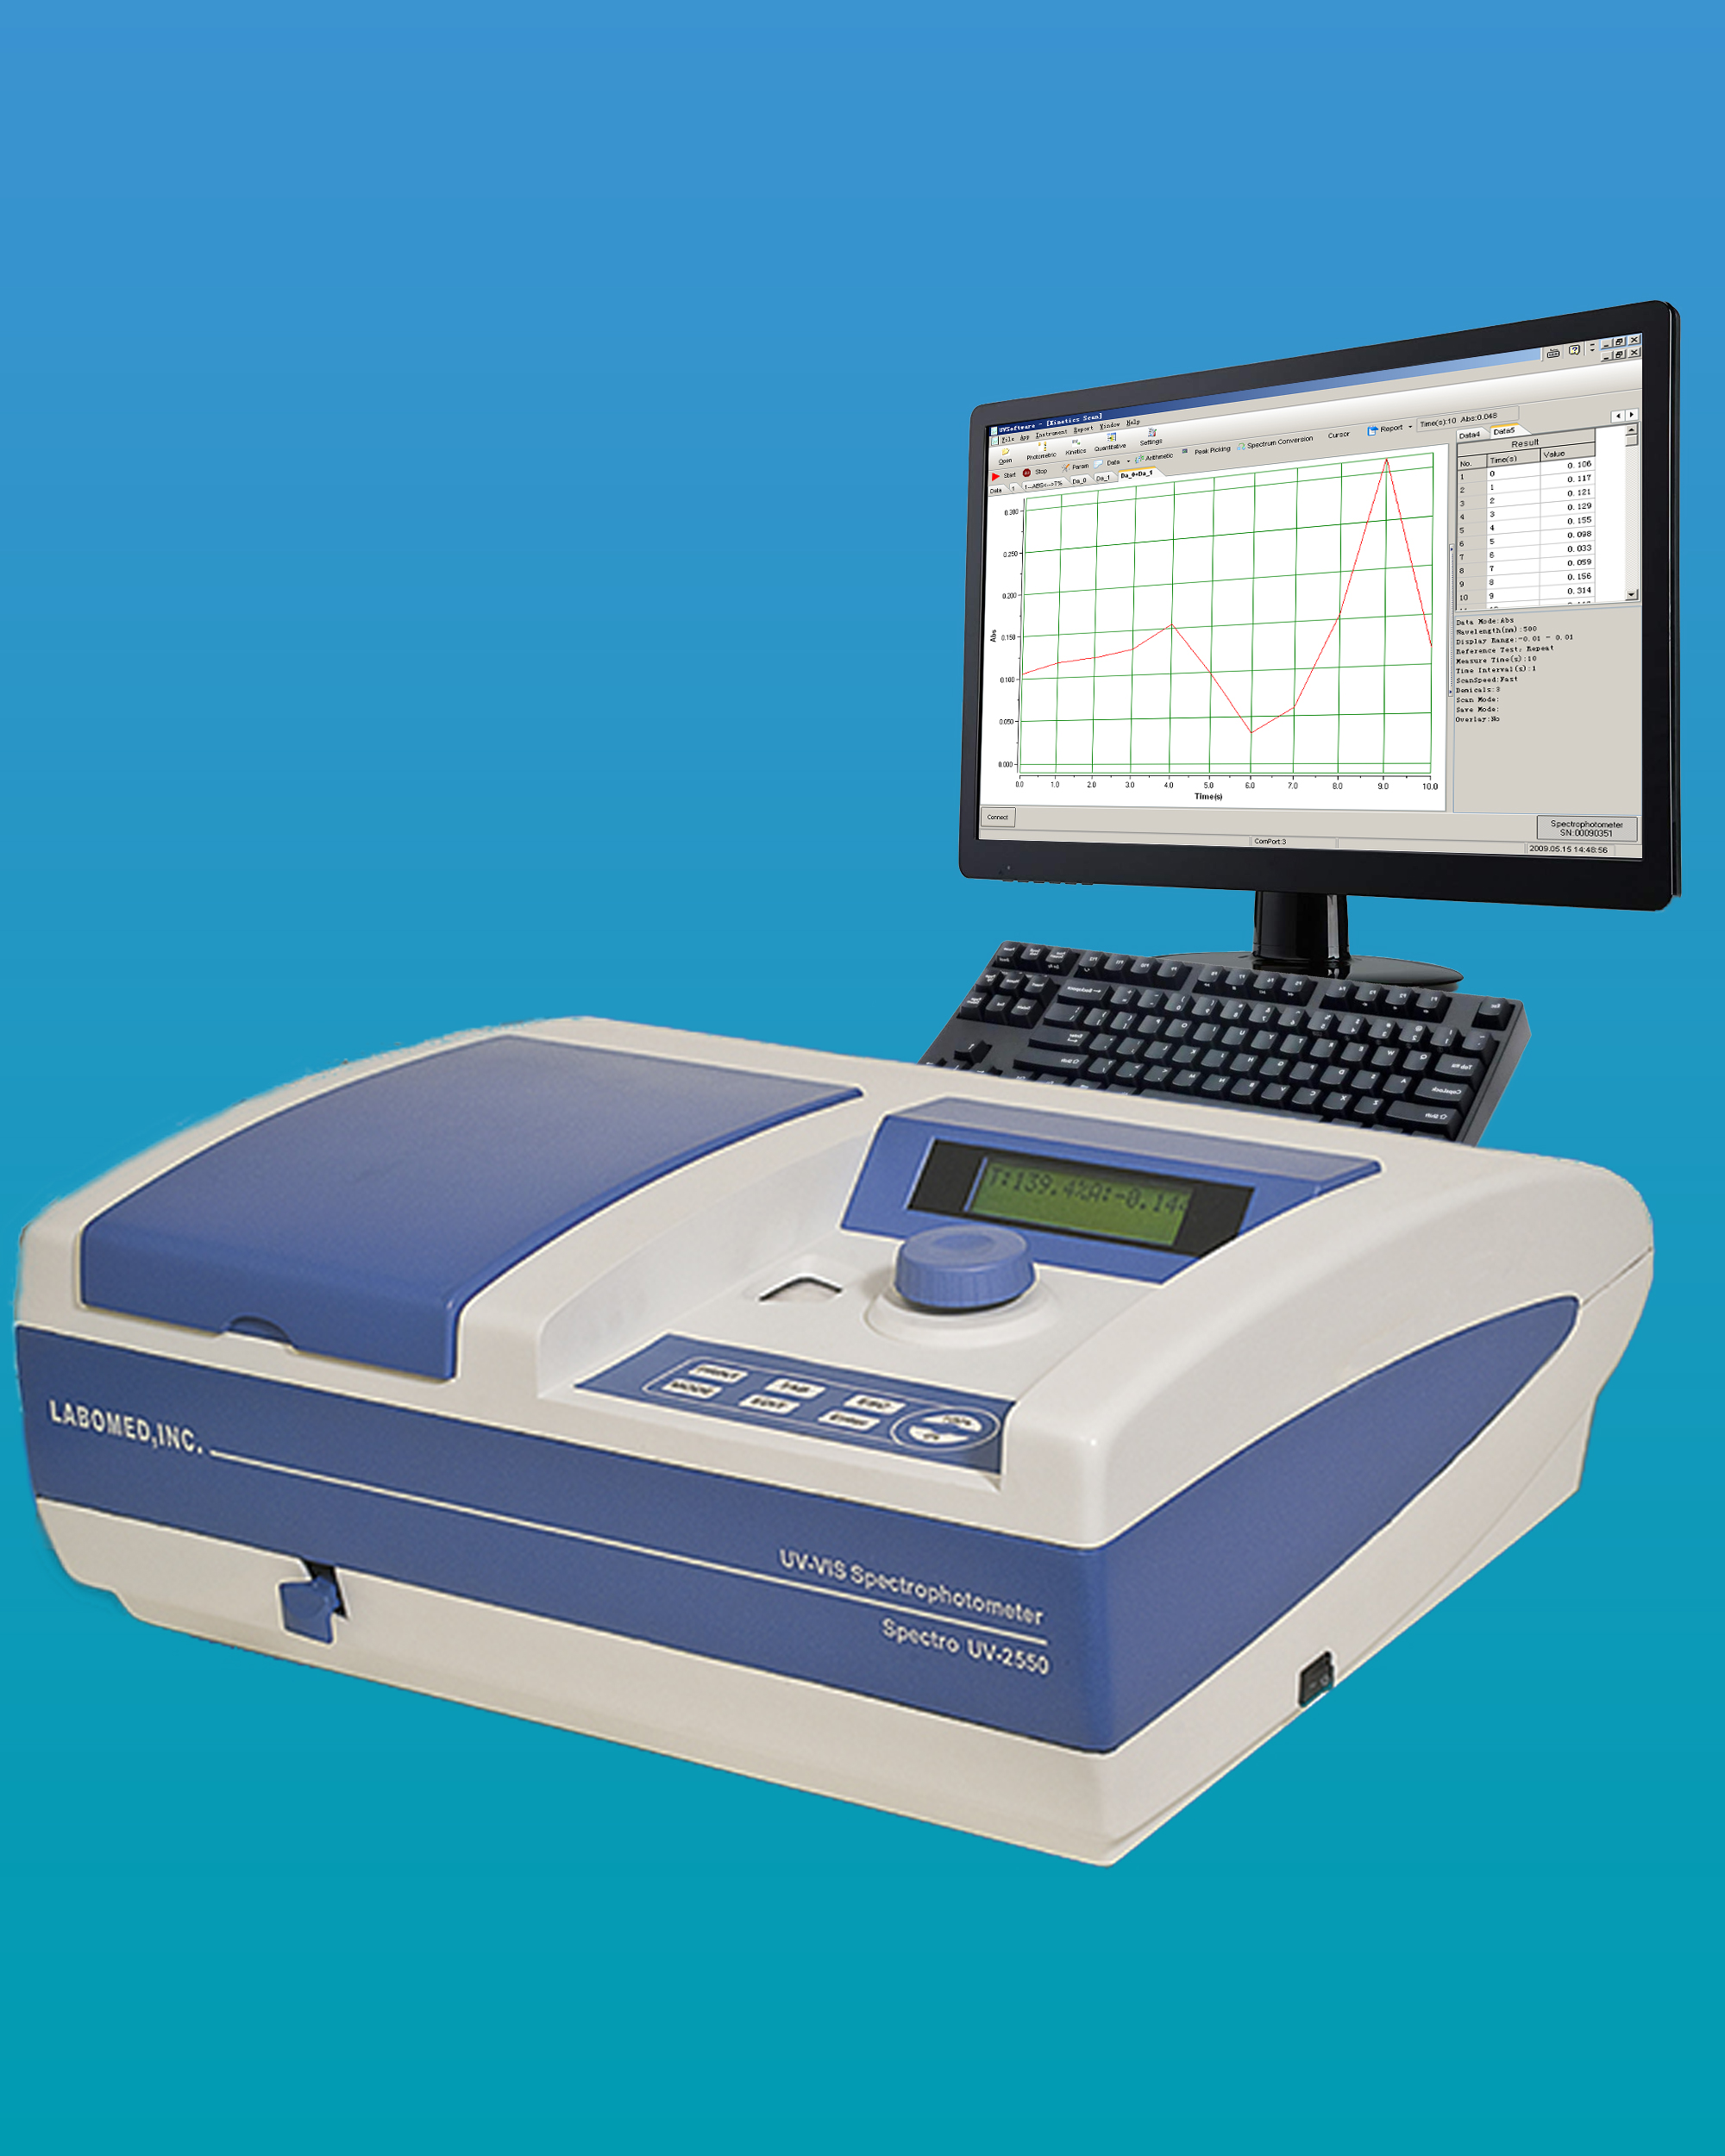 [UV-2550] UV-VIS Spectrophotometer